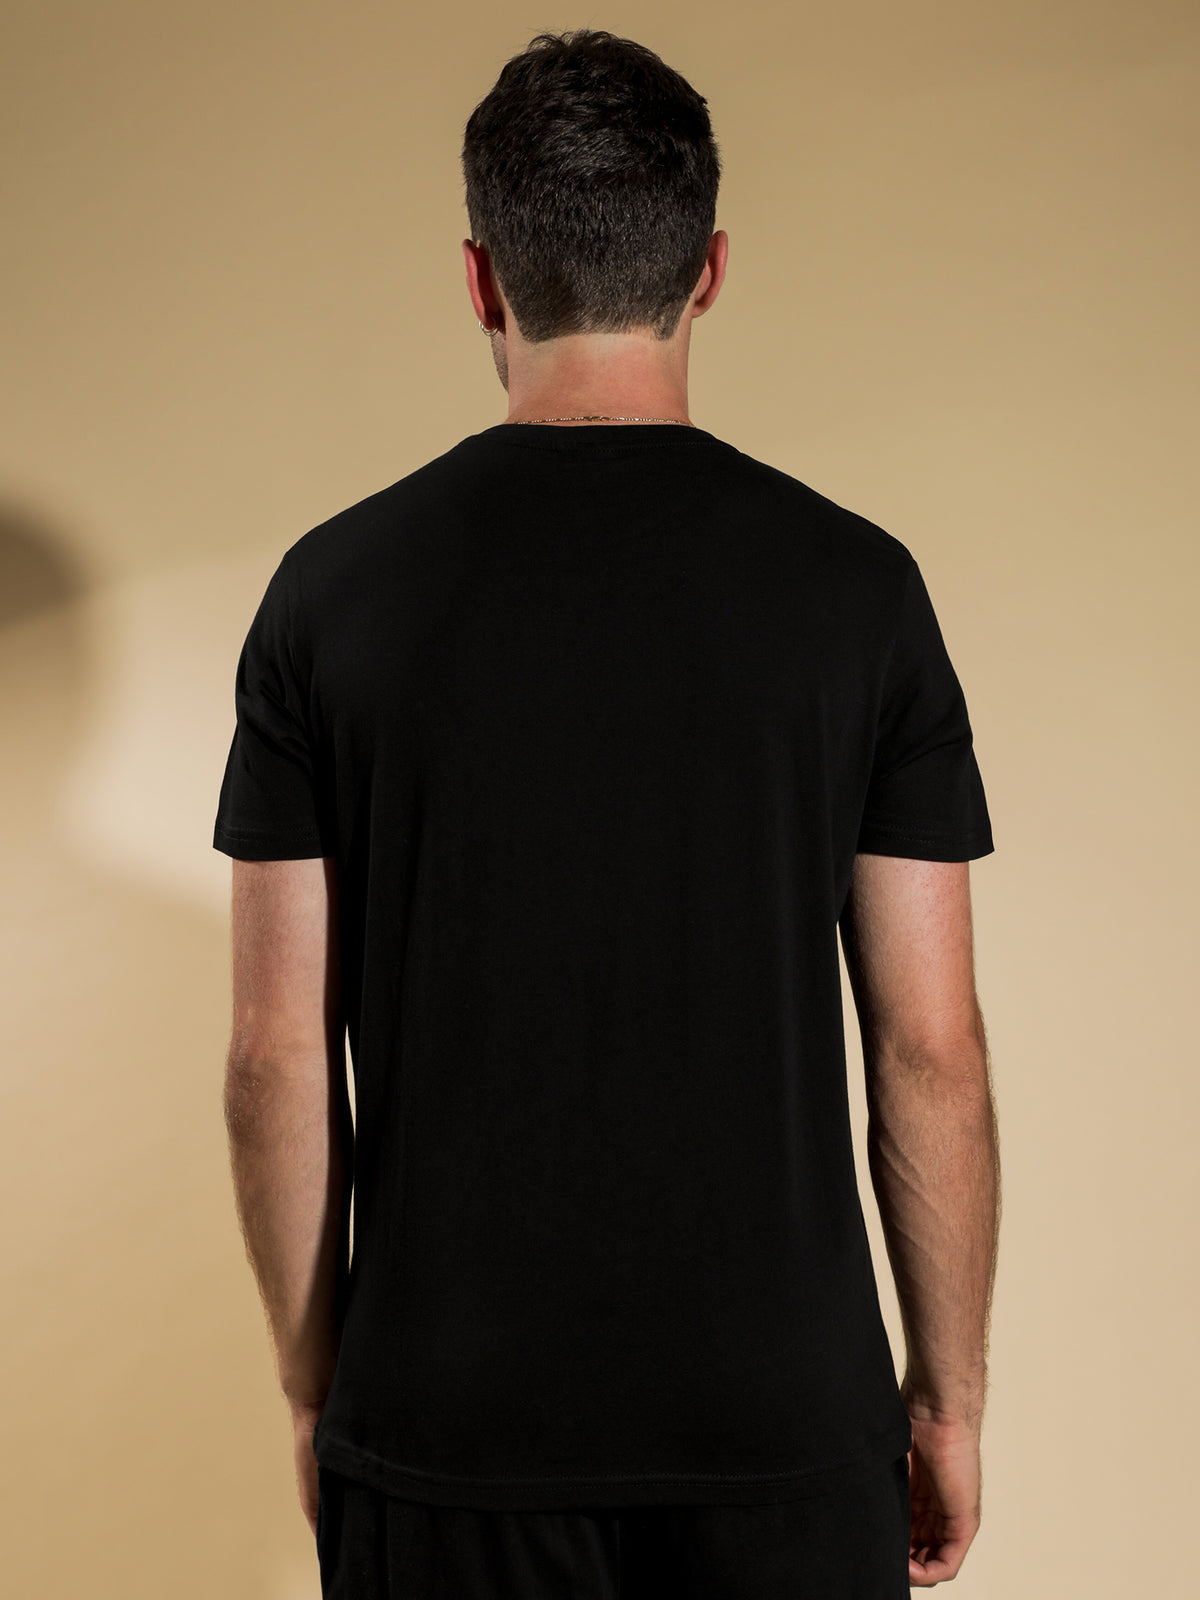 Authentic Starot T-Shirt in Black